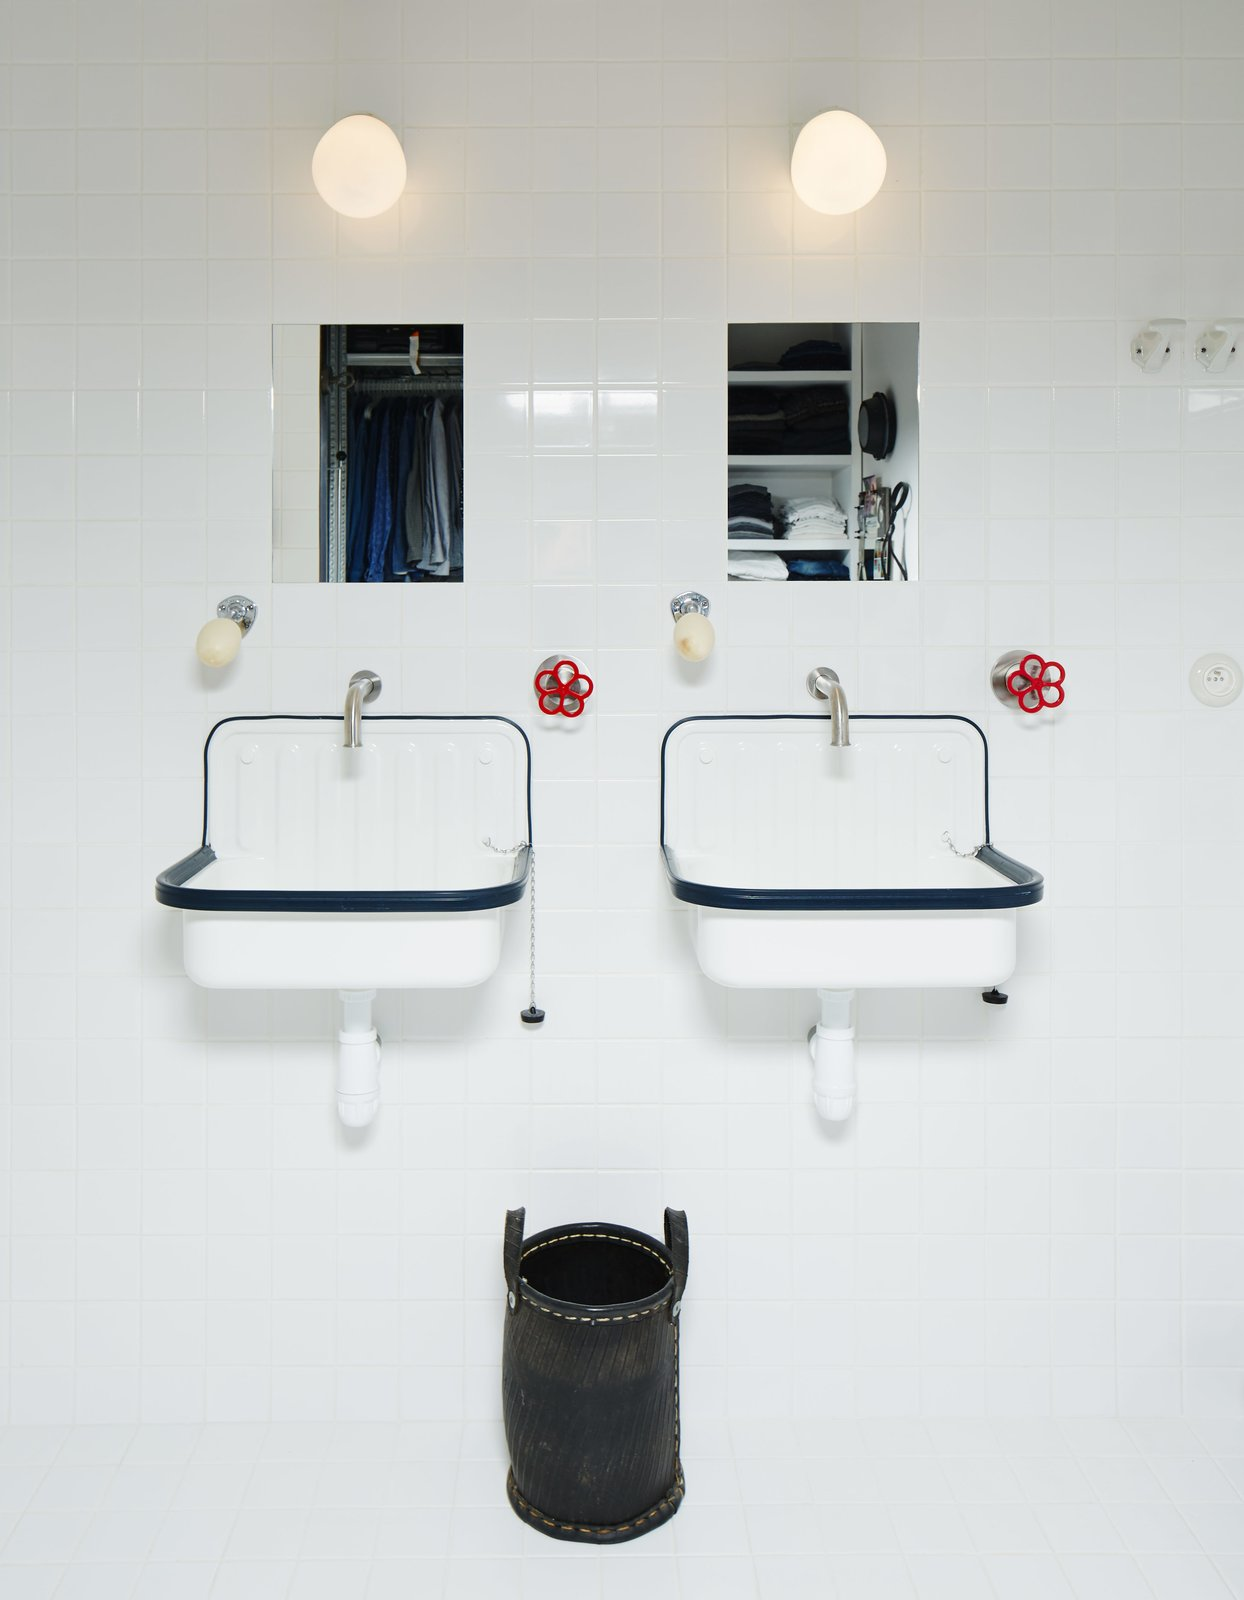 Boffi faucets join sinks from Labour and Wait in the bathroom.  Photo 6 of 10 in Tour a 17th-Century Paris Loft Overflowing with Vintage Items